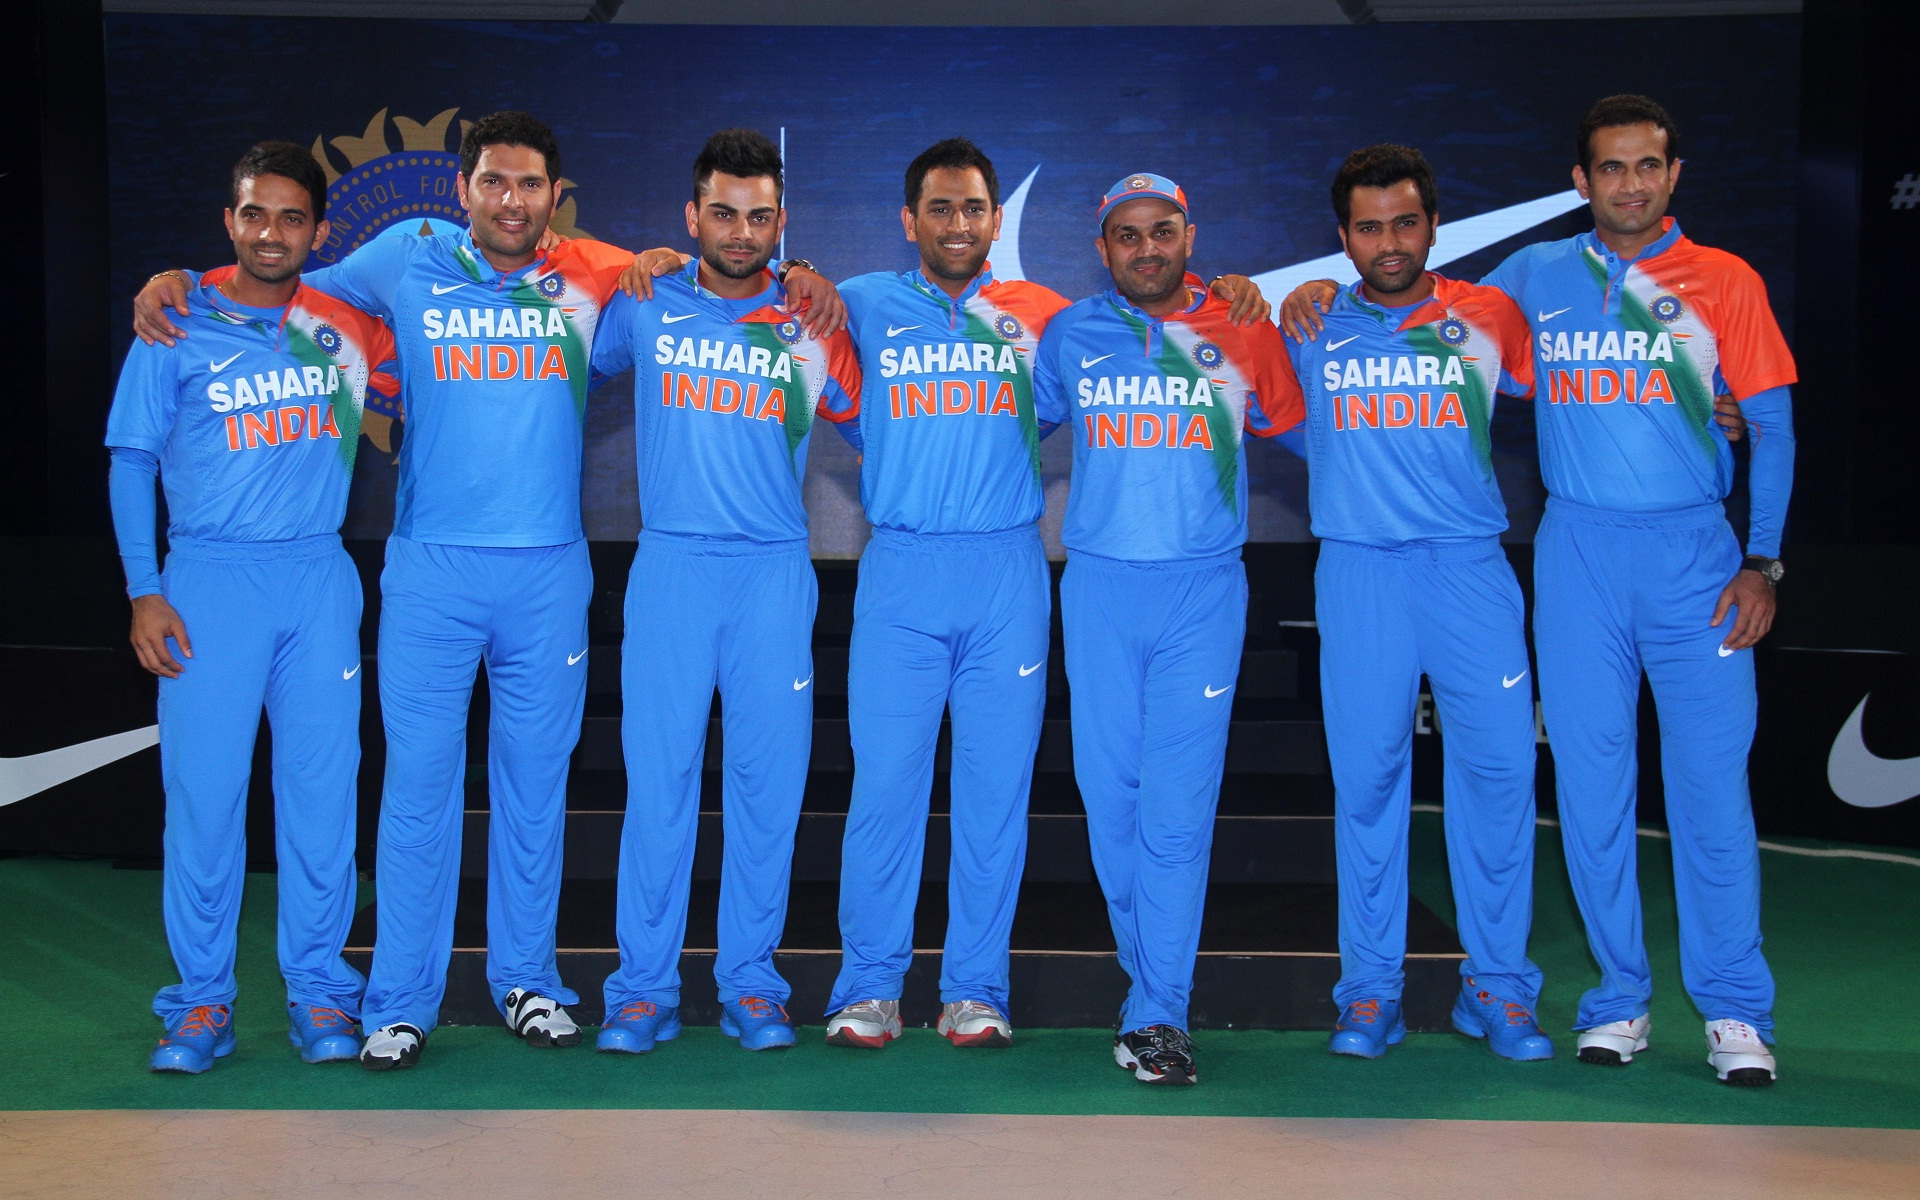 Download Indian Cricket Team Hd Wallpapers Gallery HD Wallpapers Download free images and photos [musssic.tk]